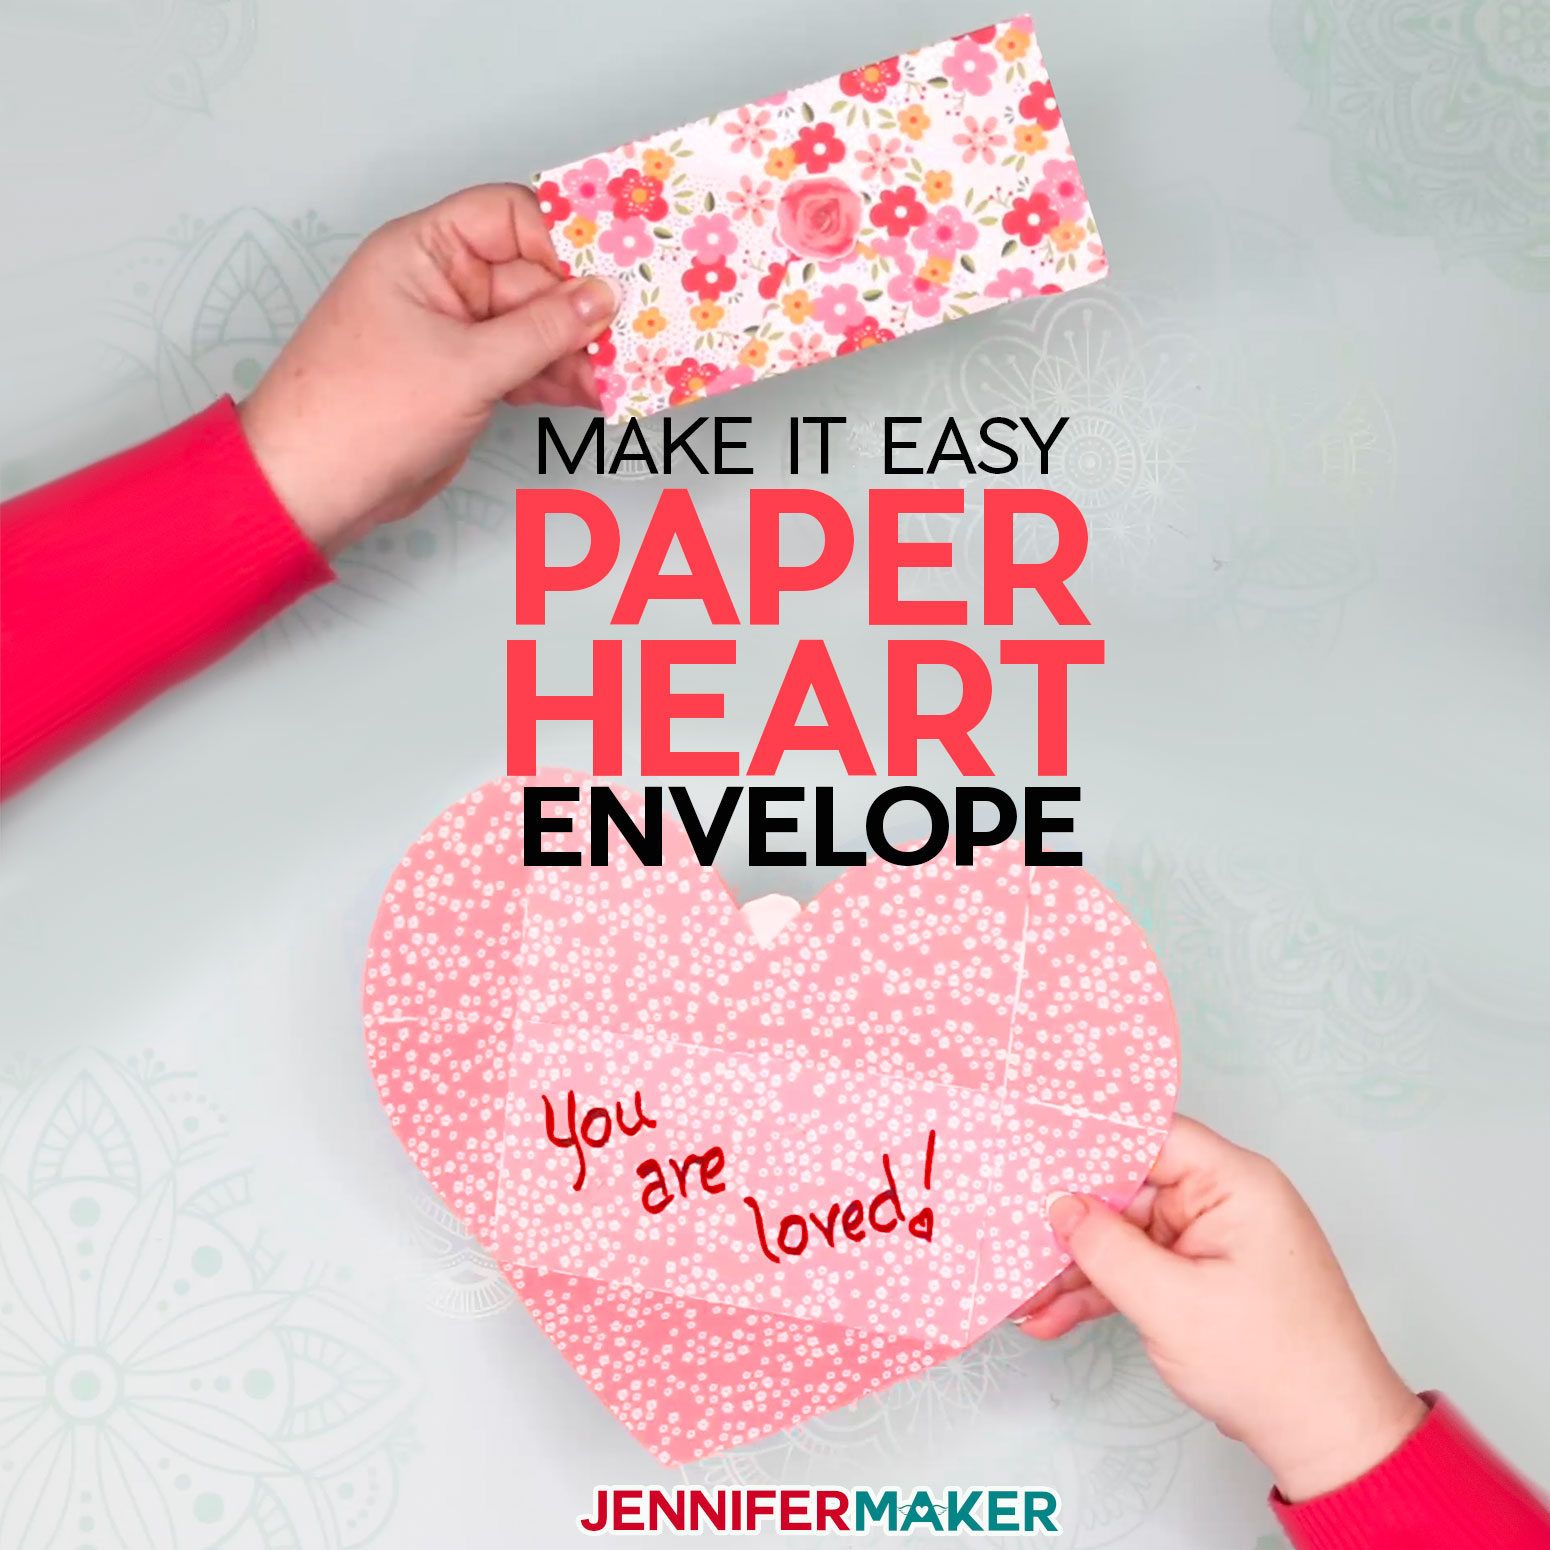 Easy Paper Heart Envelope Card - Free Pattern and SVG Cut File #cricut #heart